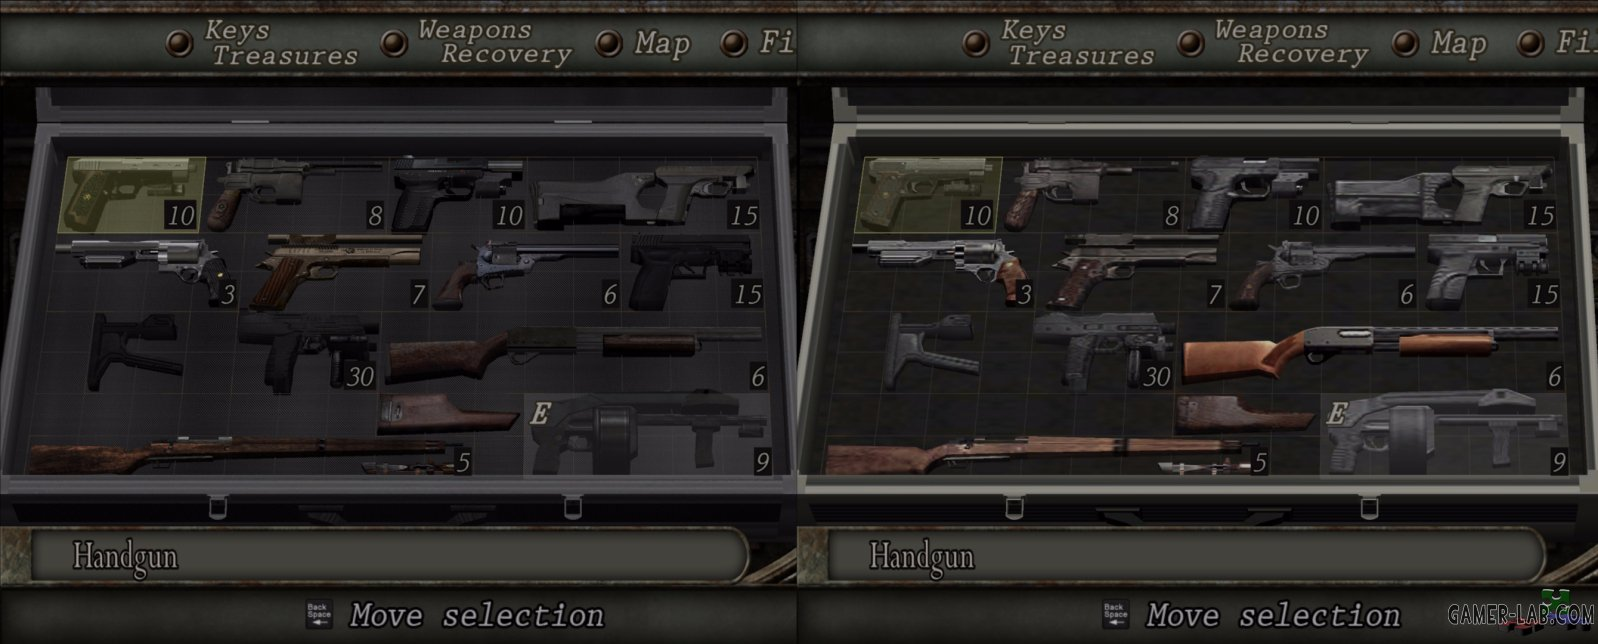 RE4UHD Reskins For All Guns